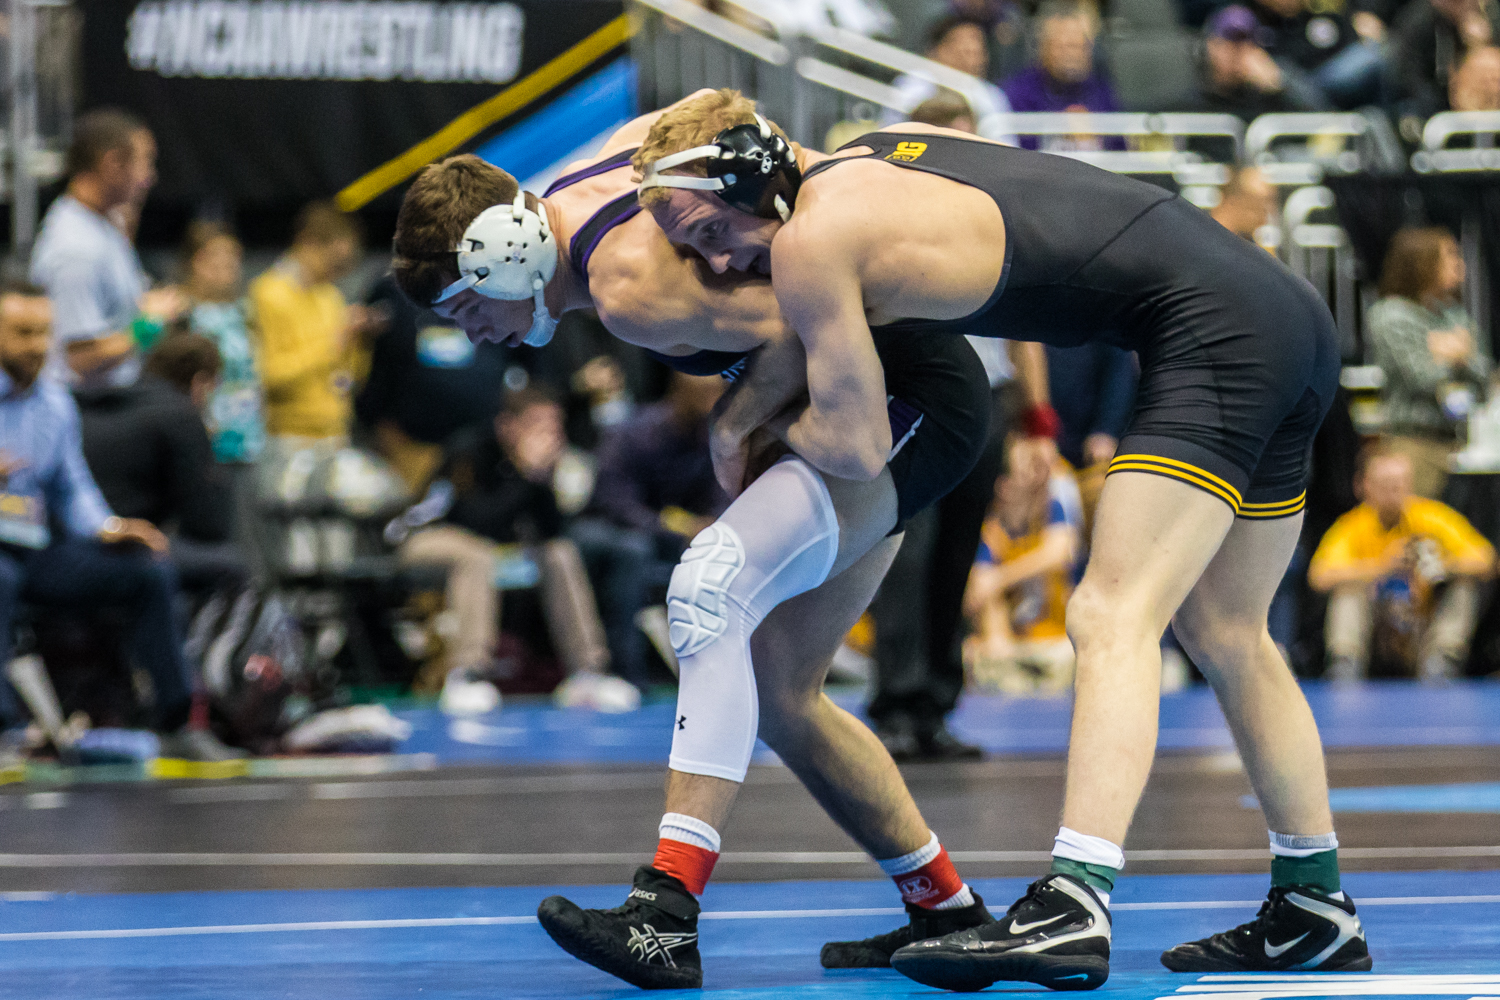 Iowa's 157-pound Kaleb Young wrestles Northwestern's Ryan Deakin during the third session of the 2019 NCAA D1 Wrestling Championships at PPG Paints Arena in Pittsburgh, PA on Friday, March 22, 2019. Young won by sudden victory, 7-5.